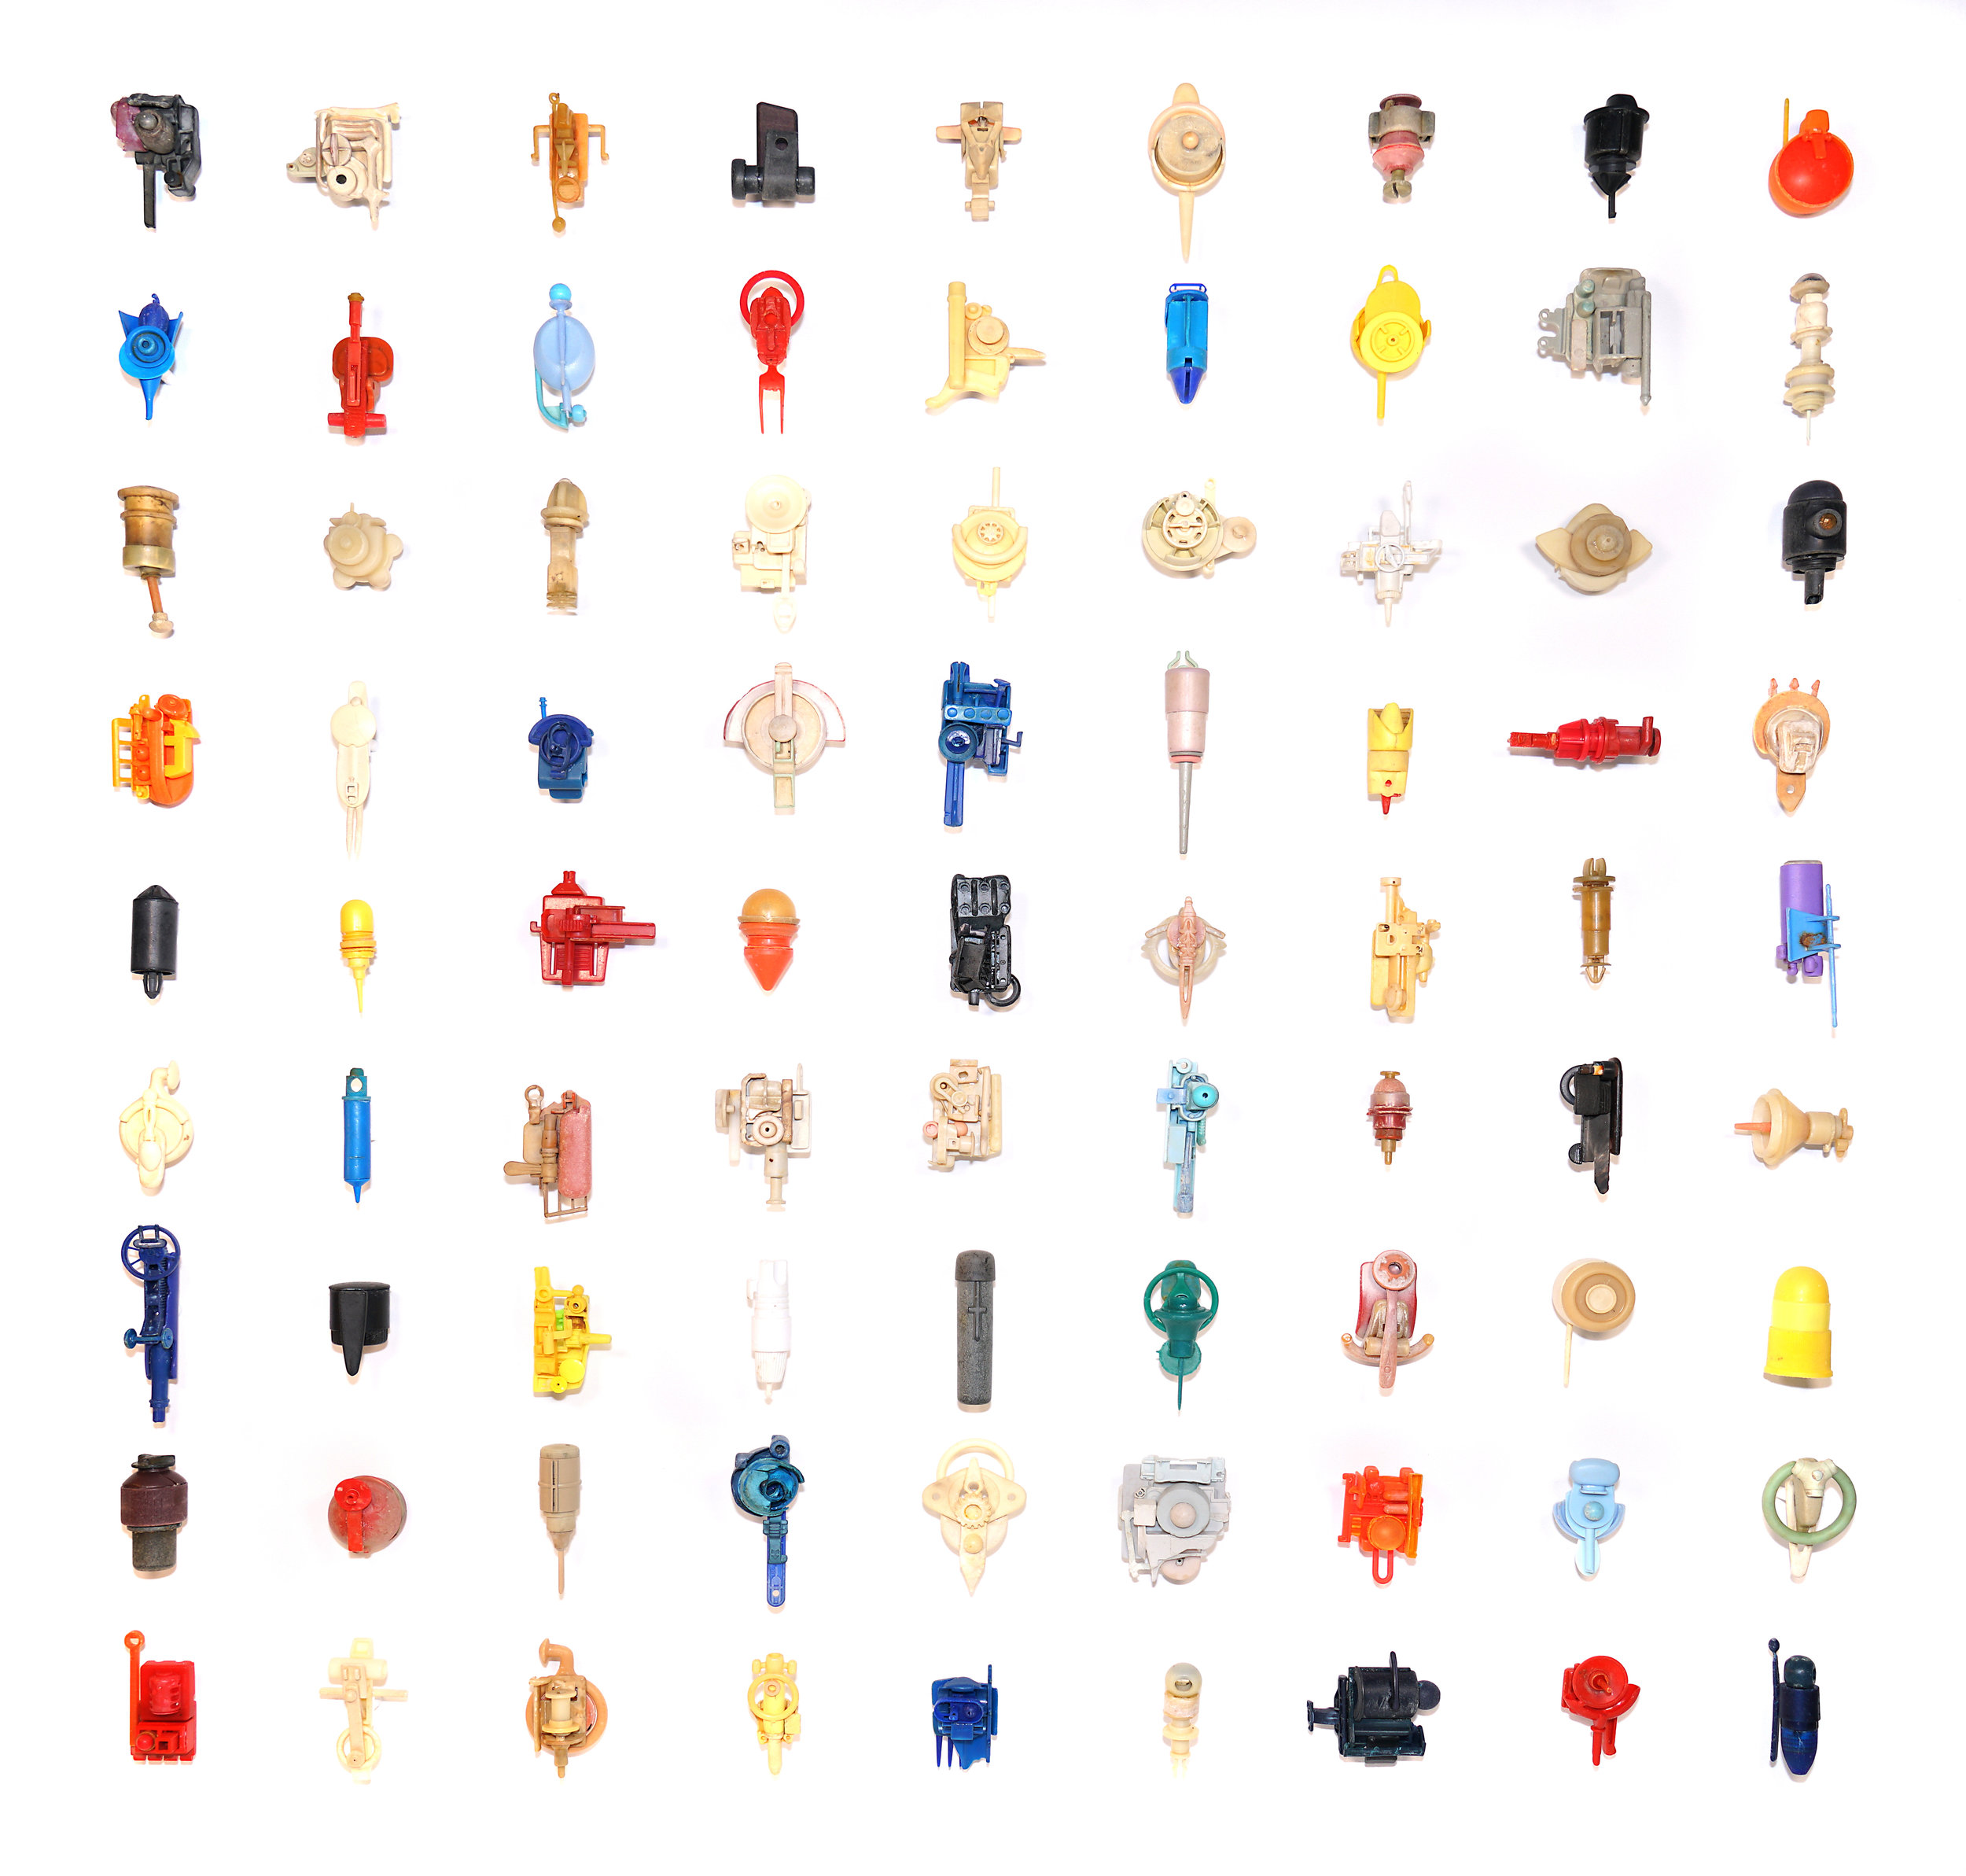 Metaphorms: Novel Mutability  2019  81 individual sculptures fashioned from unaltered plastic objects found on the UK coast 1994-2018 Framed; 102 x 102 cm